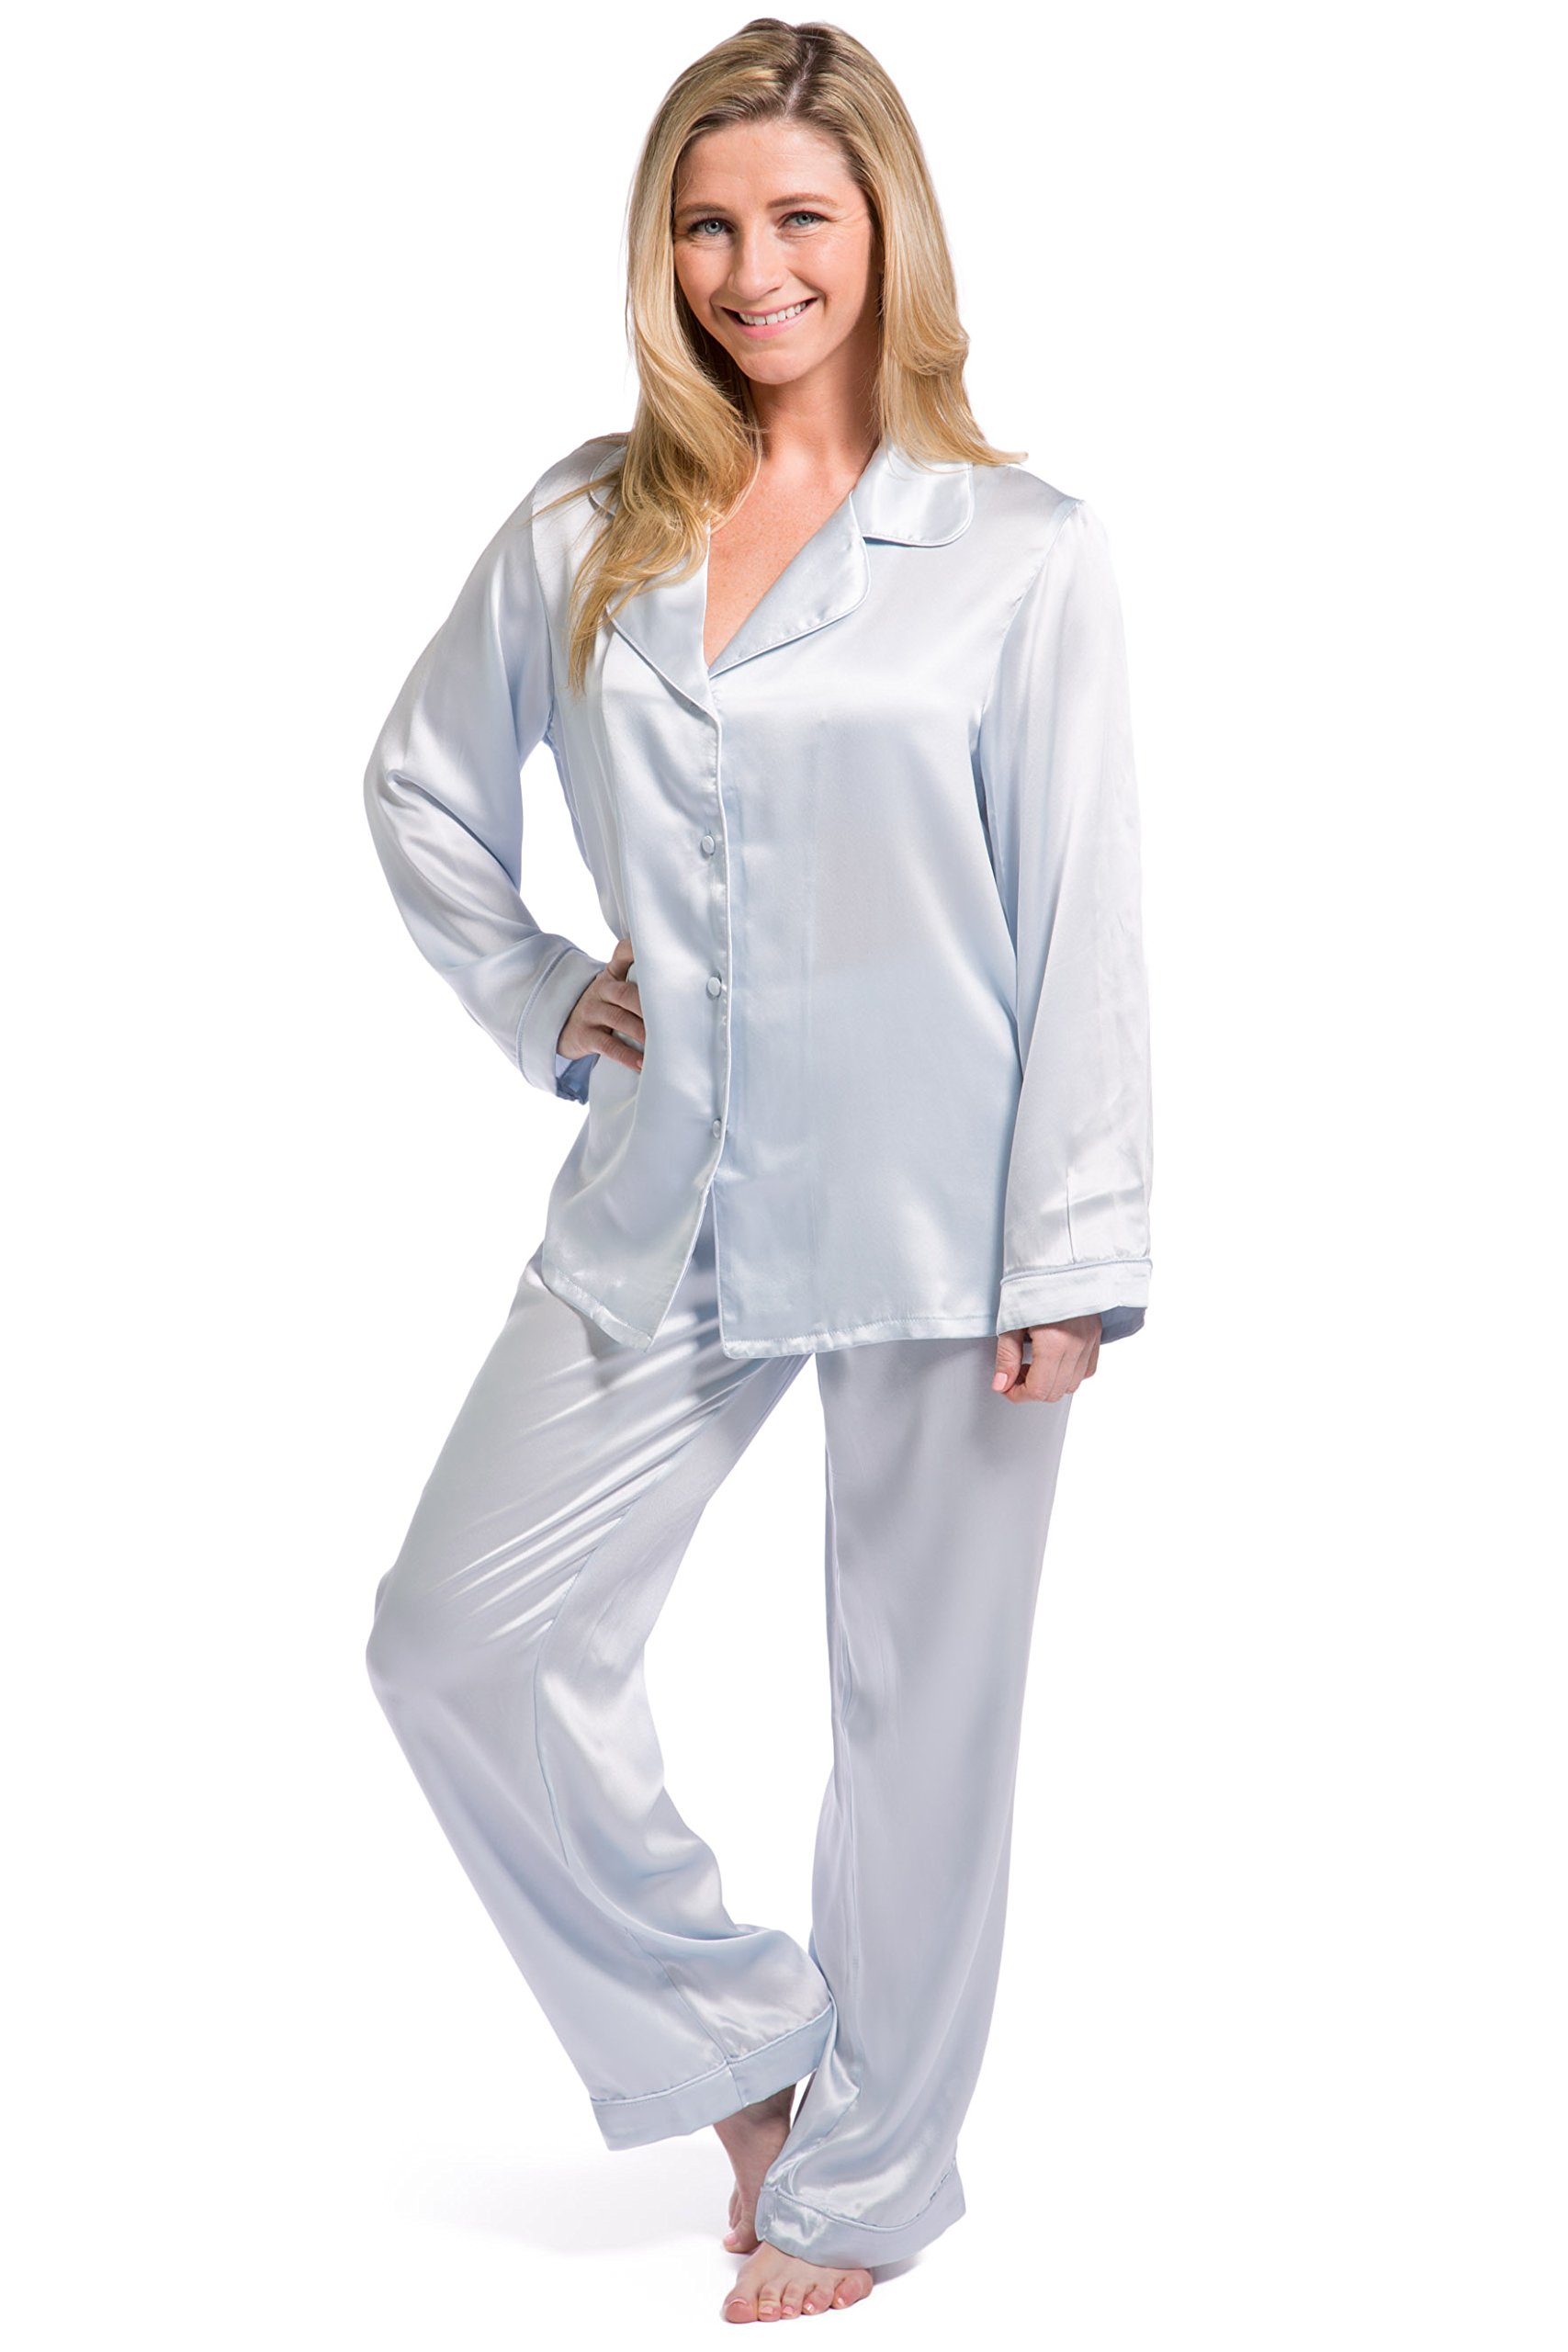 Fishers Finery Women's Classic Pure Mulberry Silk Pajama Set With Gift Box, Light Blue, Medium